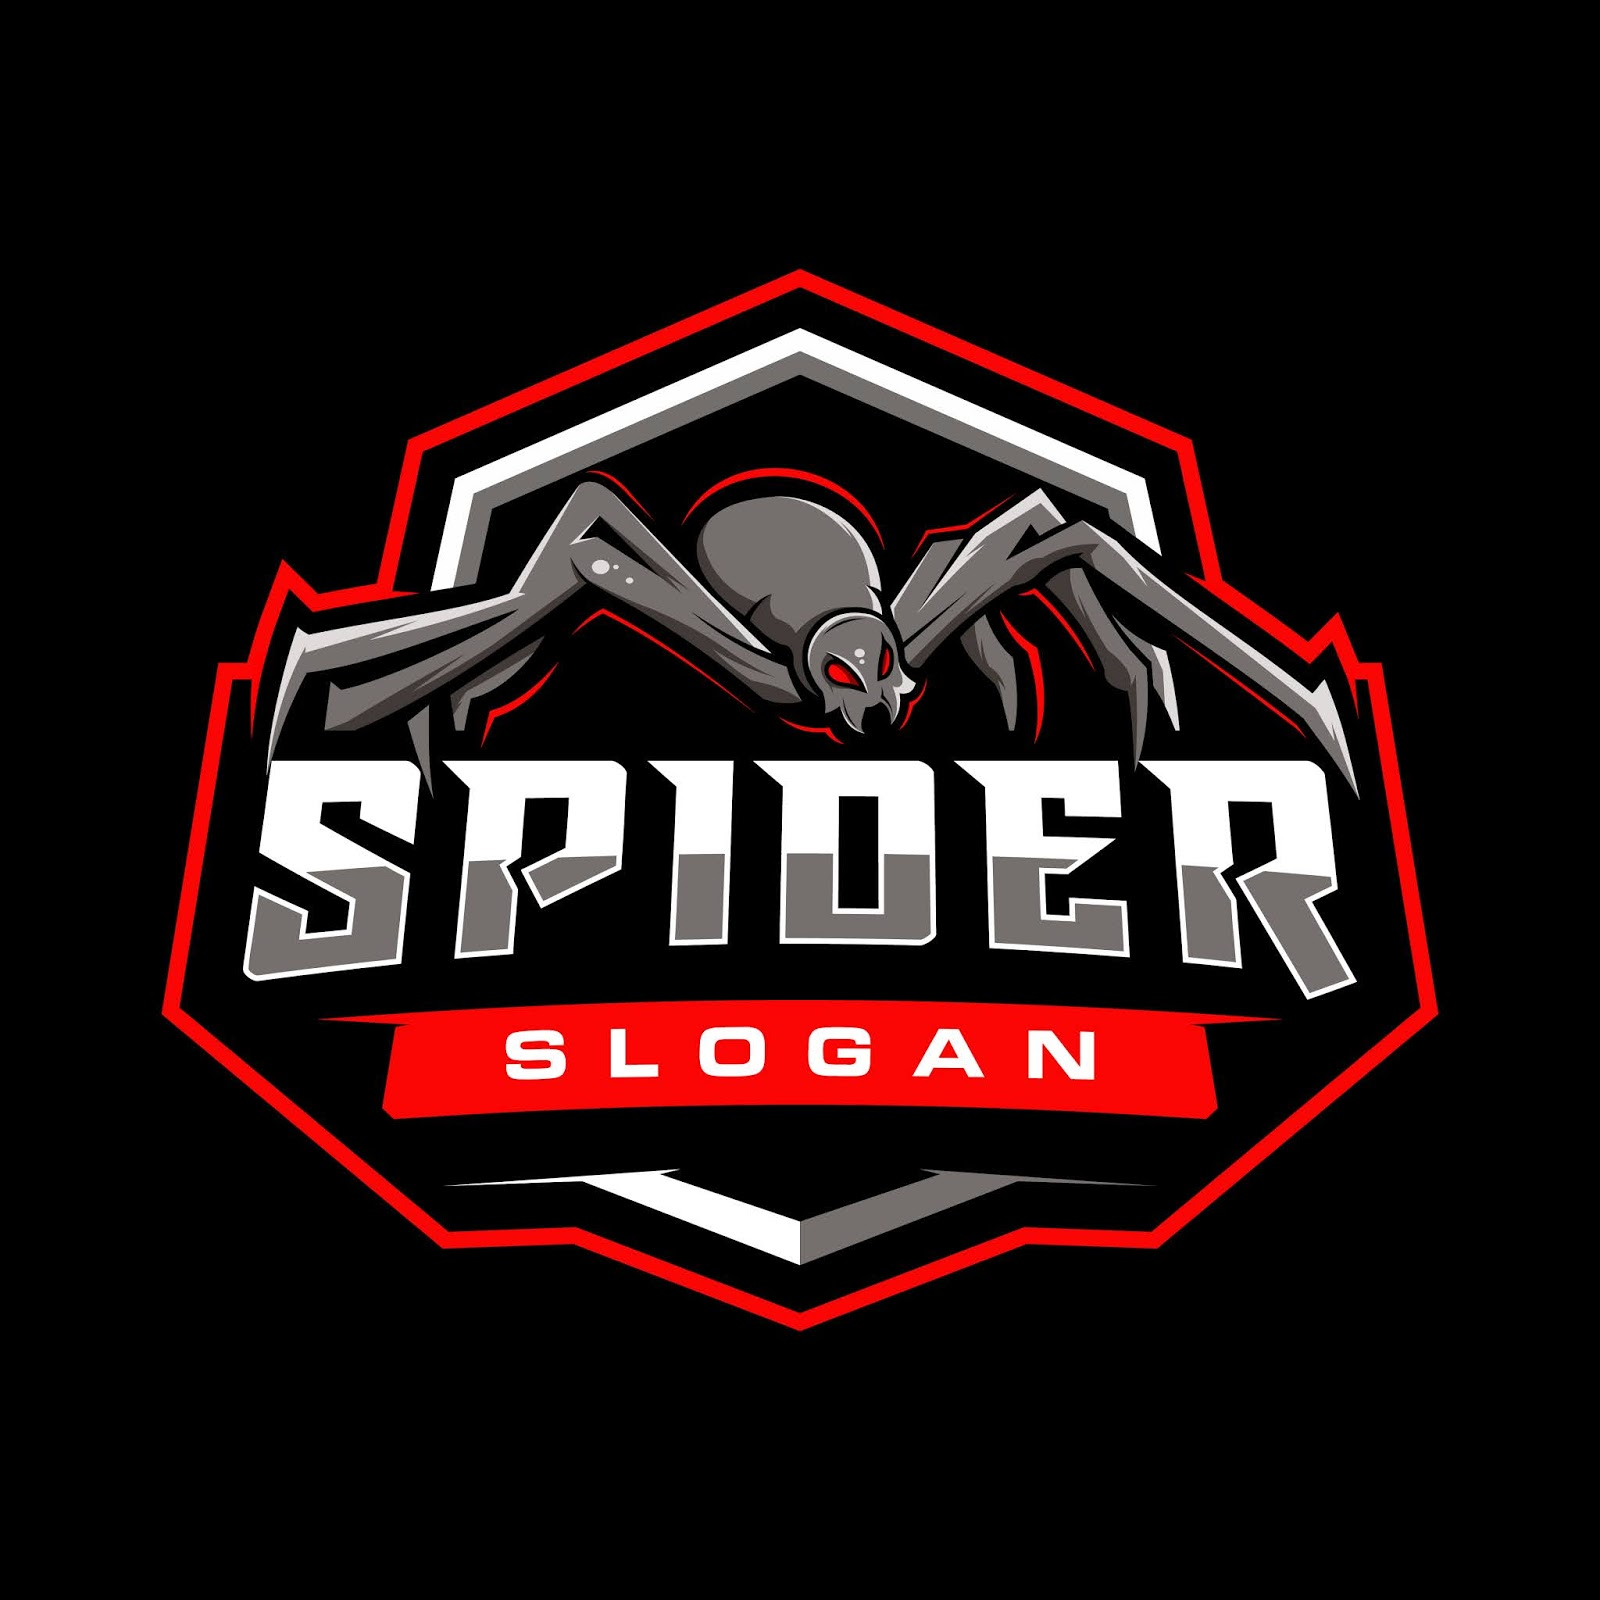 Spider Gaming Badge Free Download Vector CDR, AI, EPS and PNG Formats